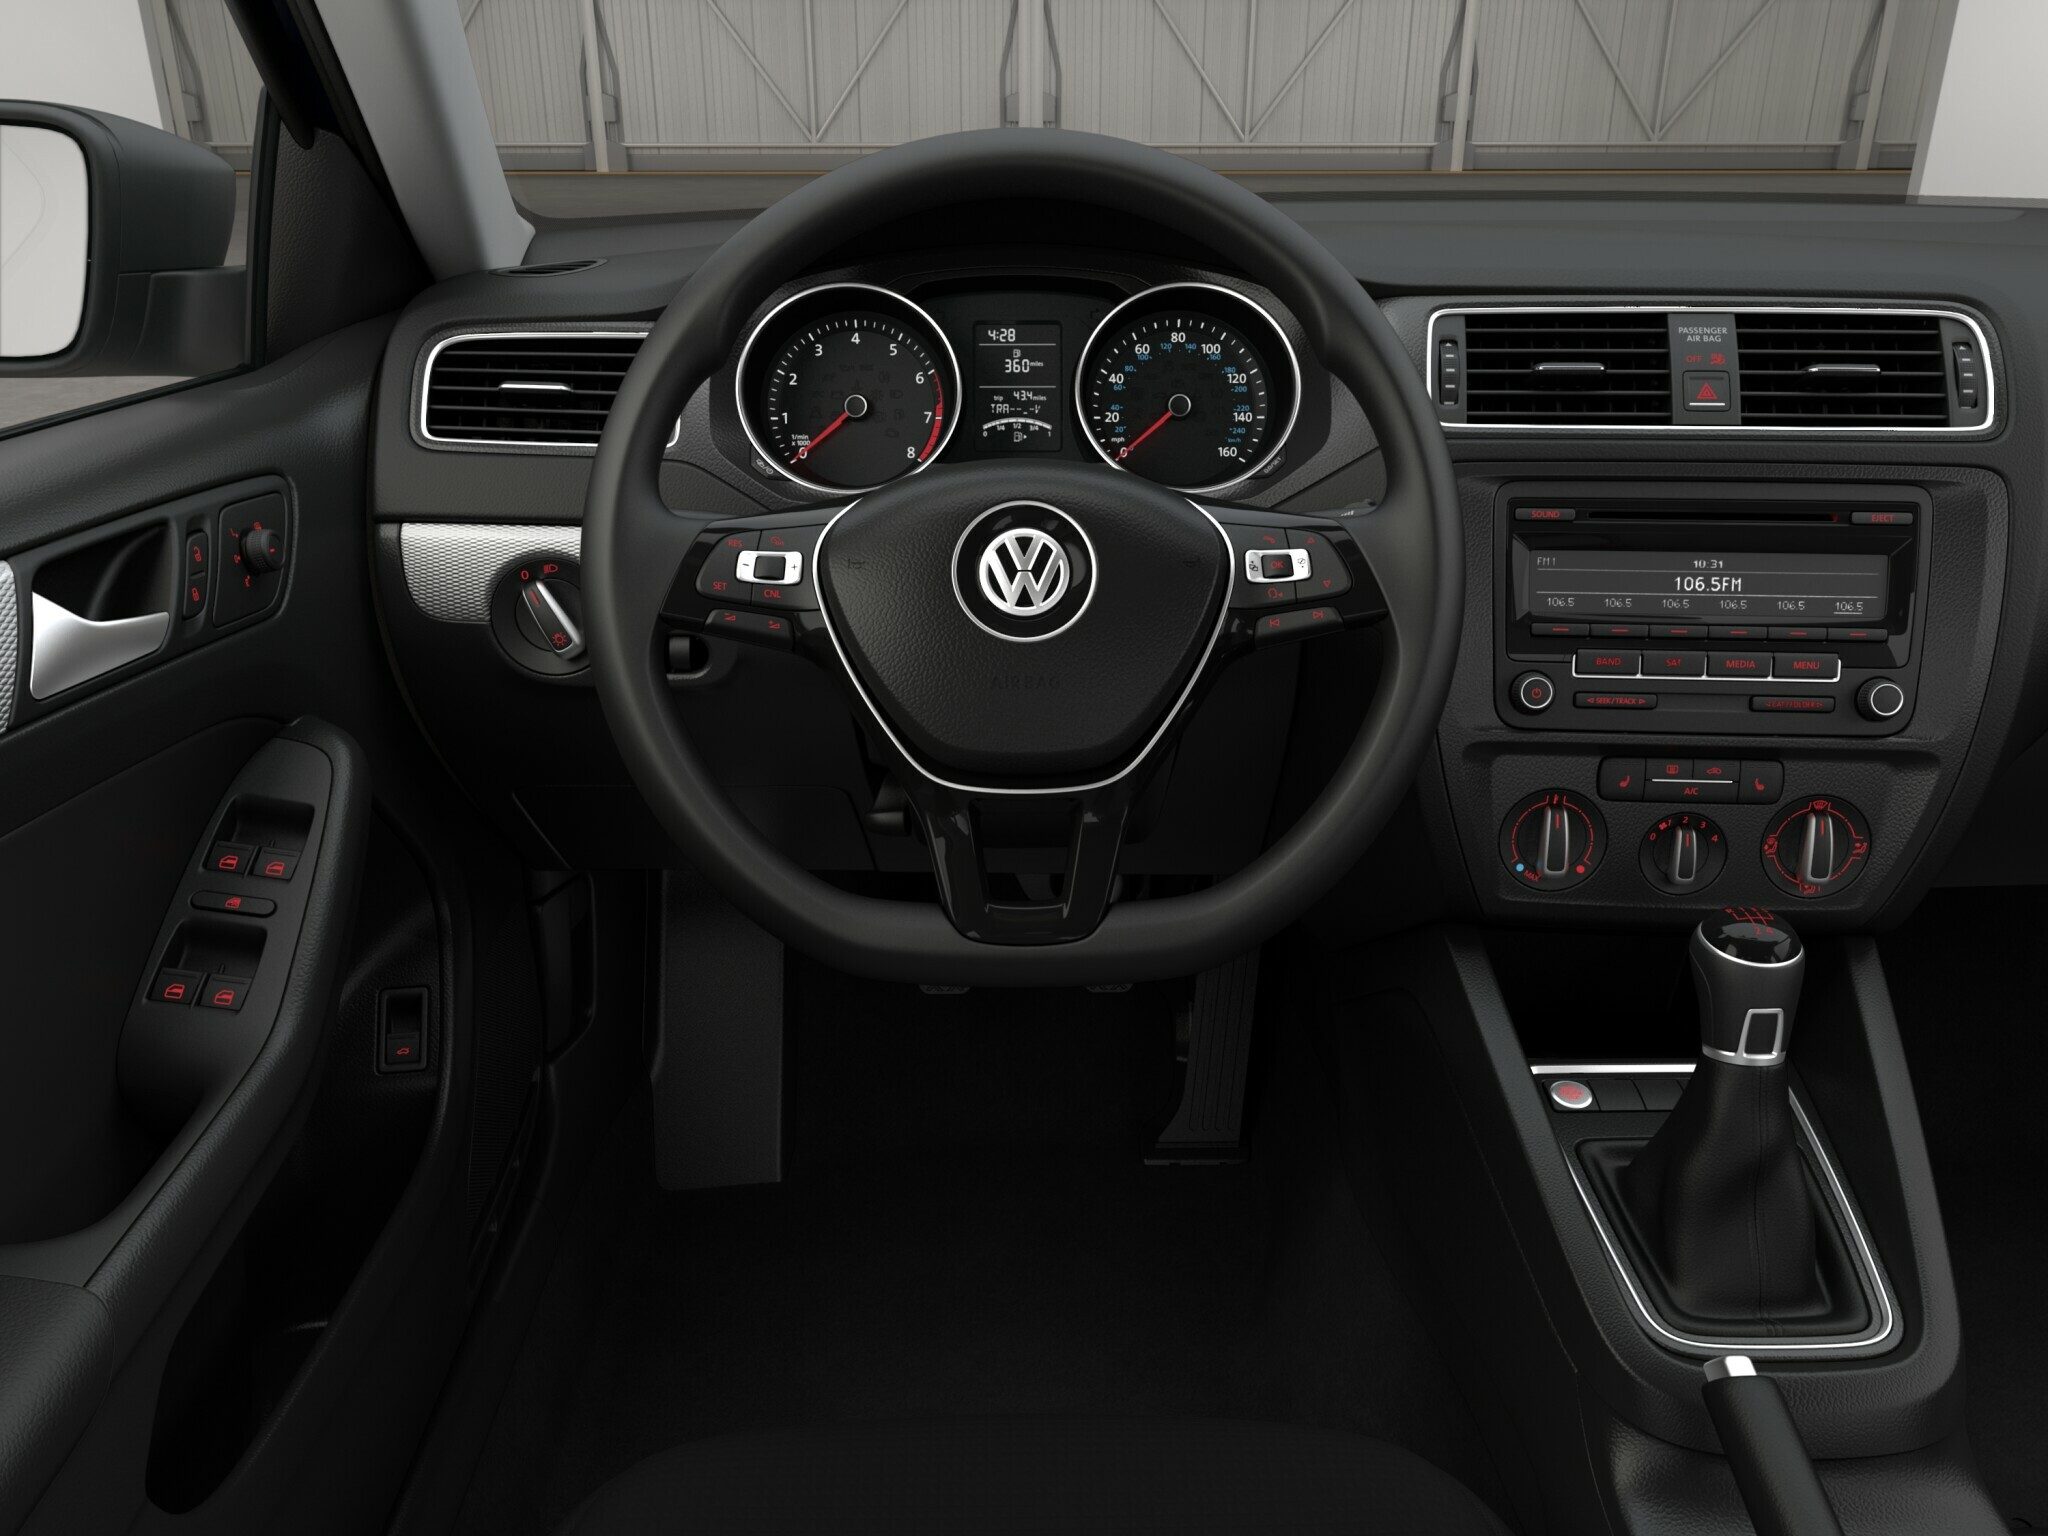 jetta volkswagen sa vw used price sale for cars autotrader